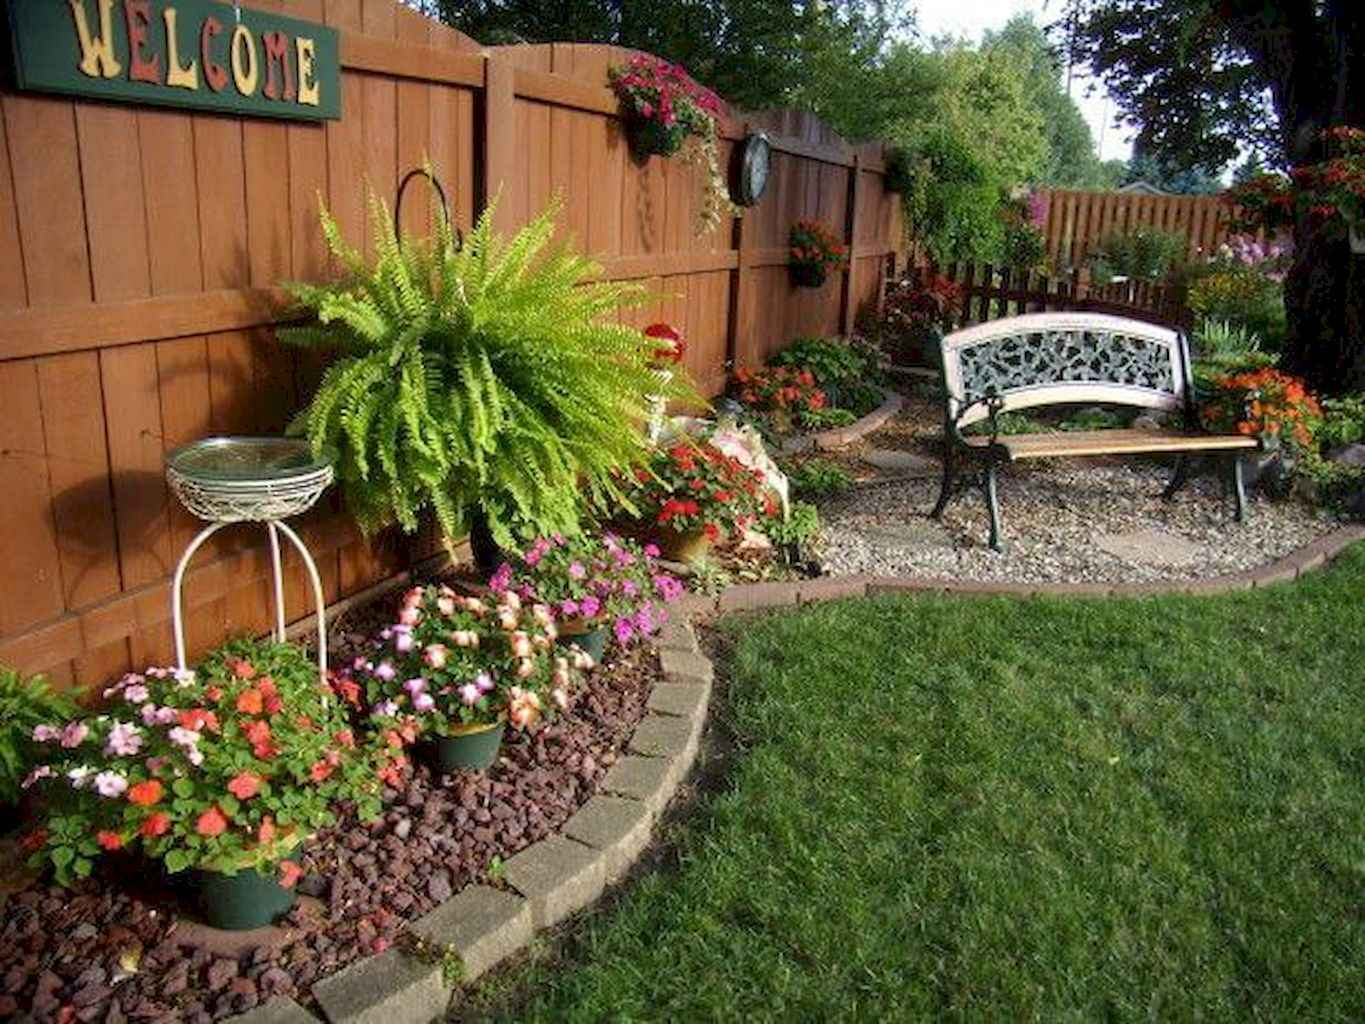 80 Small Backyard Landscaping Ideas On A Budget Homespecially for 14 Clever Ideas How to Upgrade Landscaping For Small Backyards